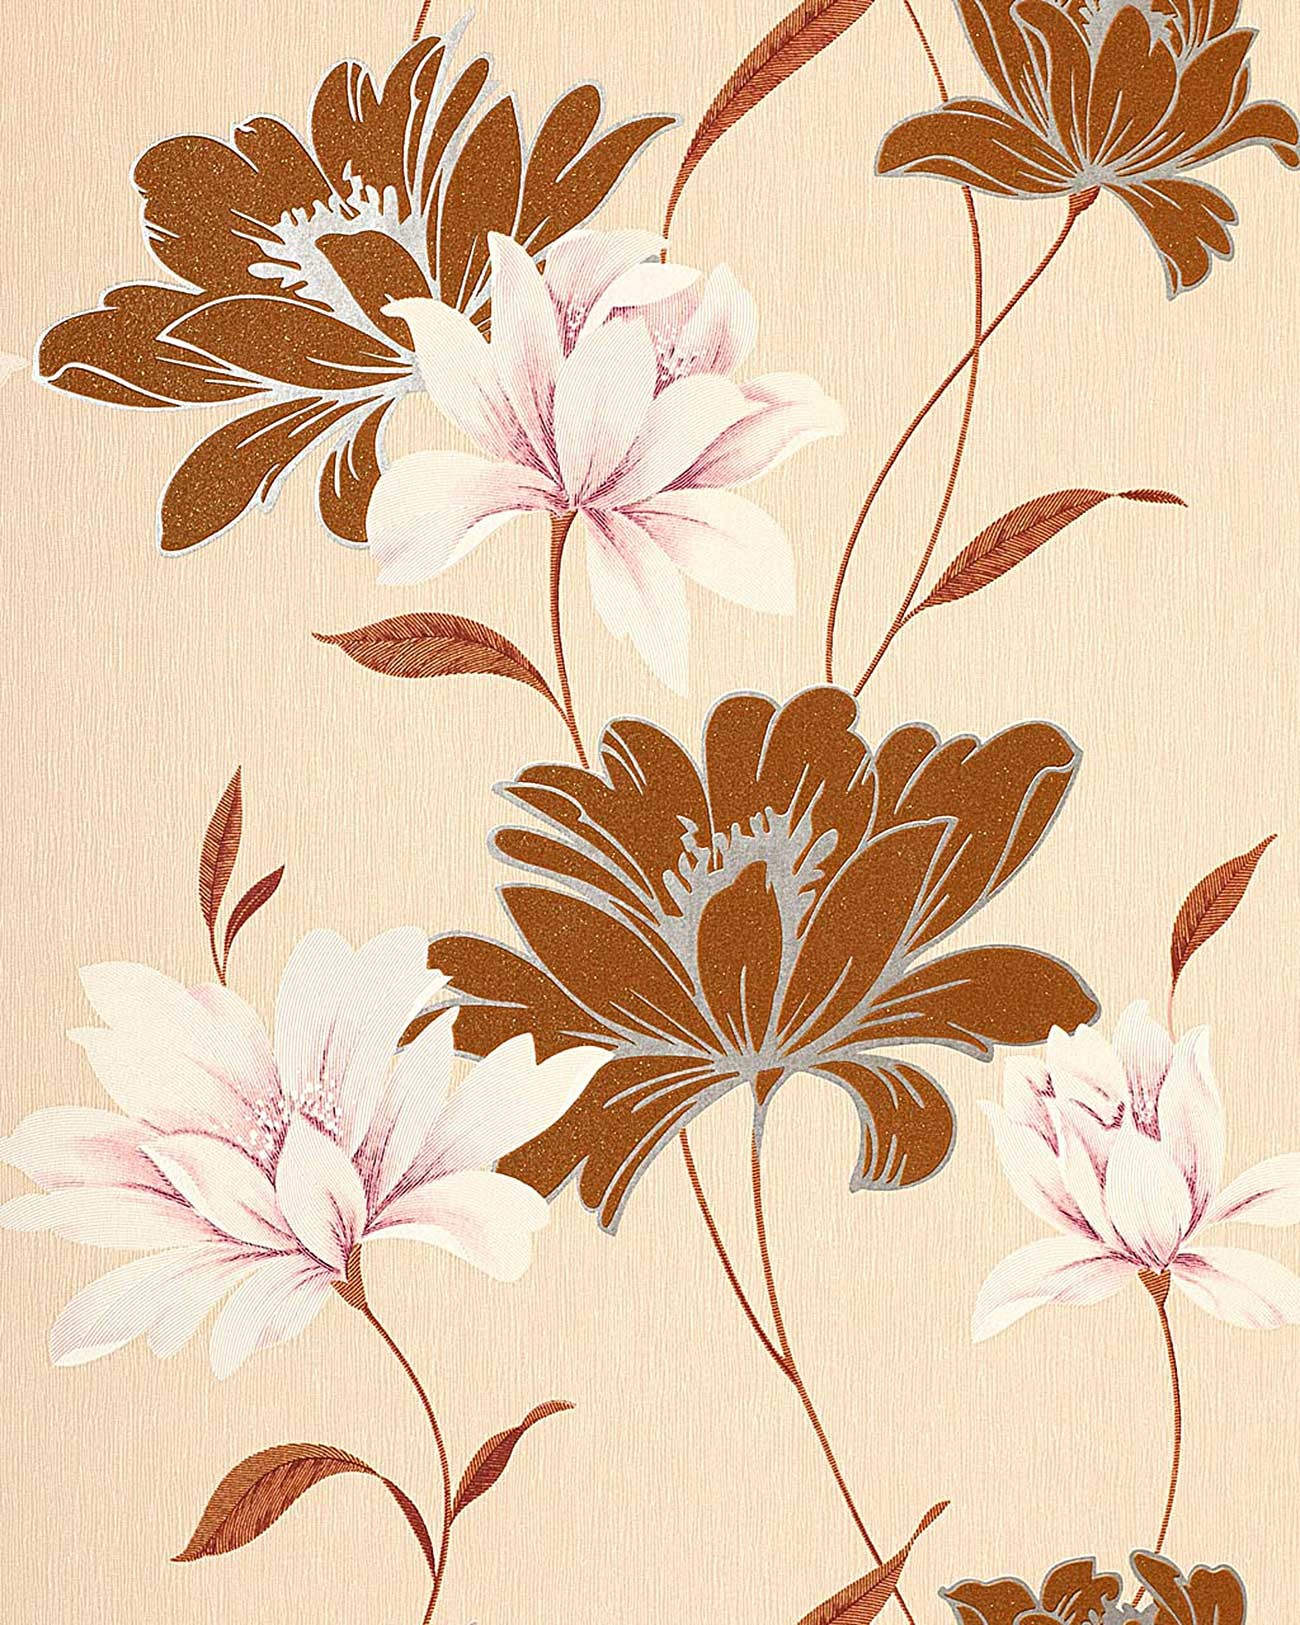 Wall Wallpaper Floral Vinyl Covering EDEM 168 31 Flowers Textured Nut Brown Cream White Rose